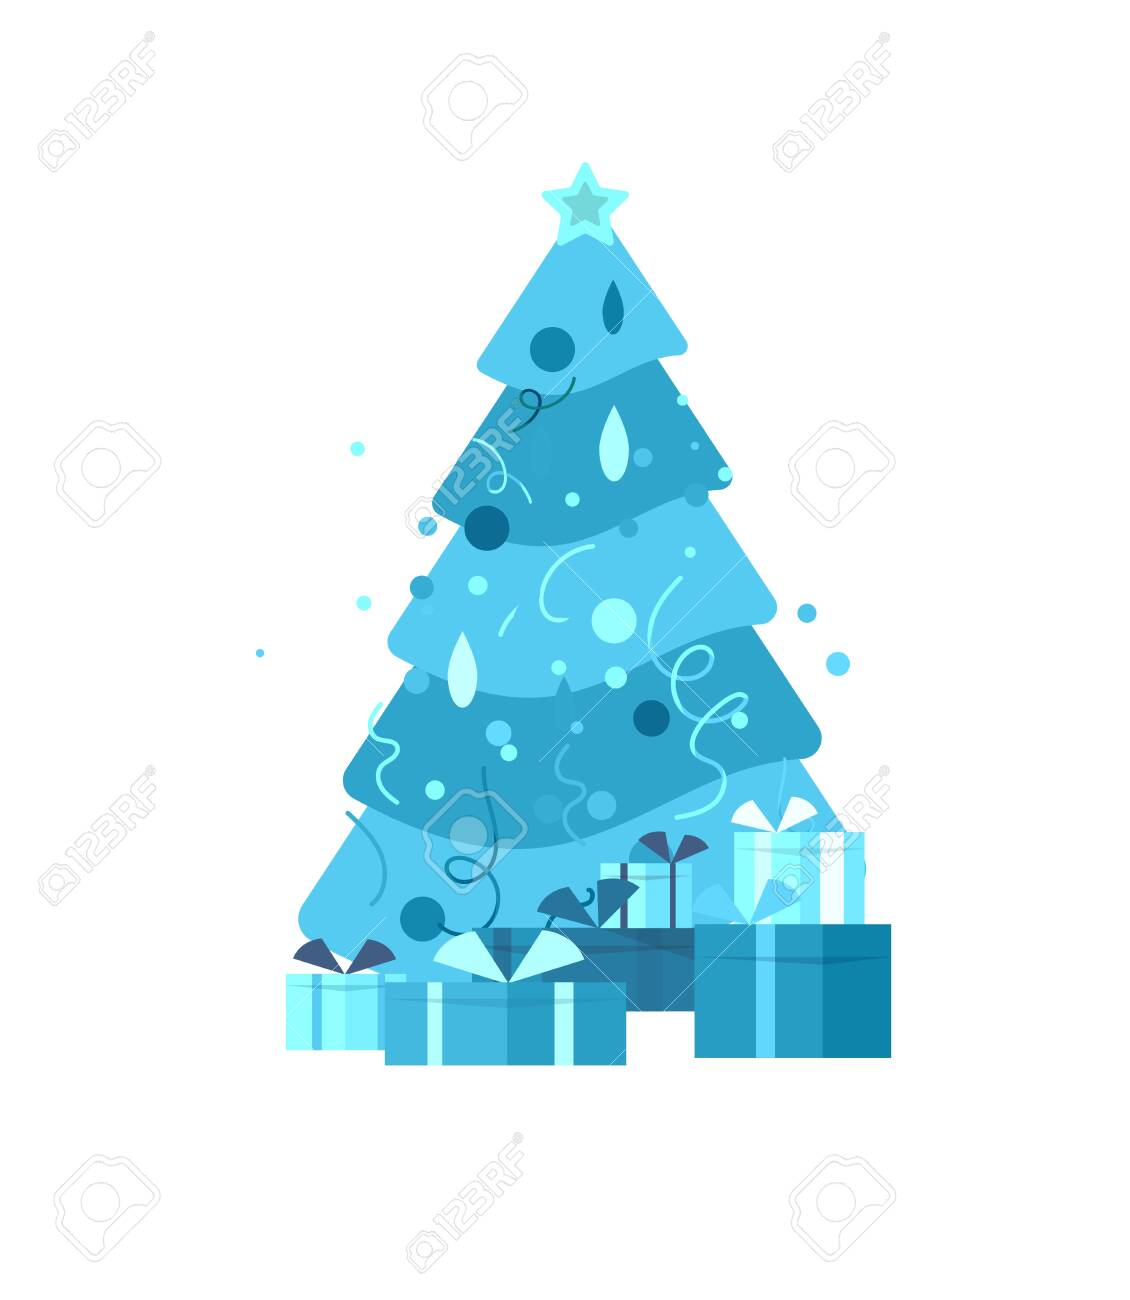 template greeting card winter Holidays. Merry Christmas and Happy New Year Website with Christmas tree and gift on background - 124033771